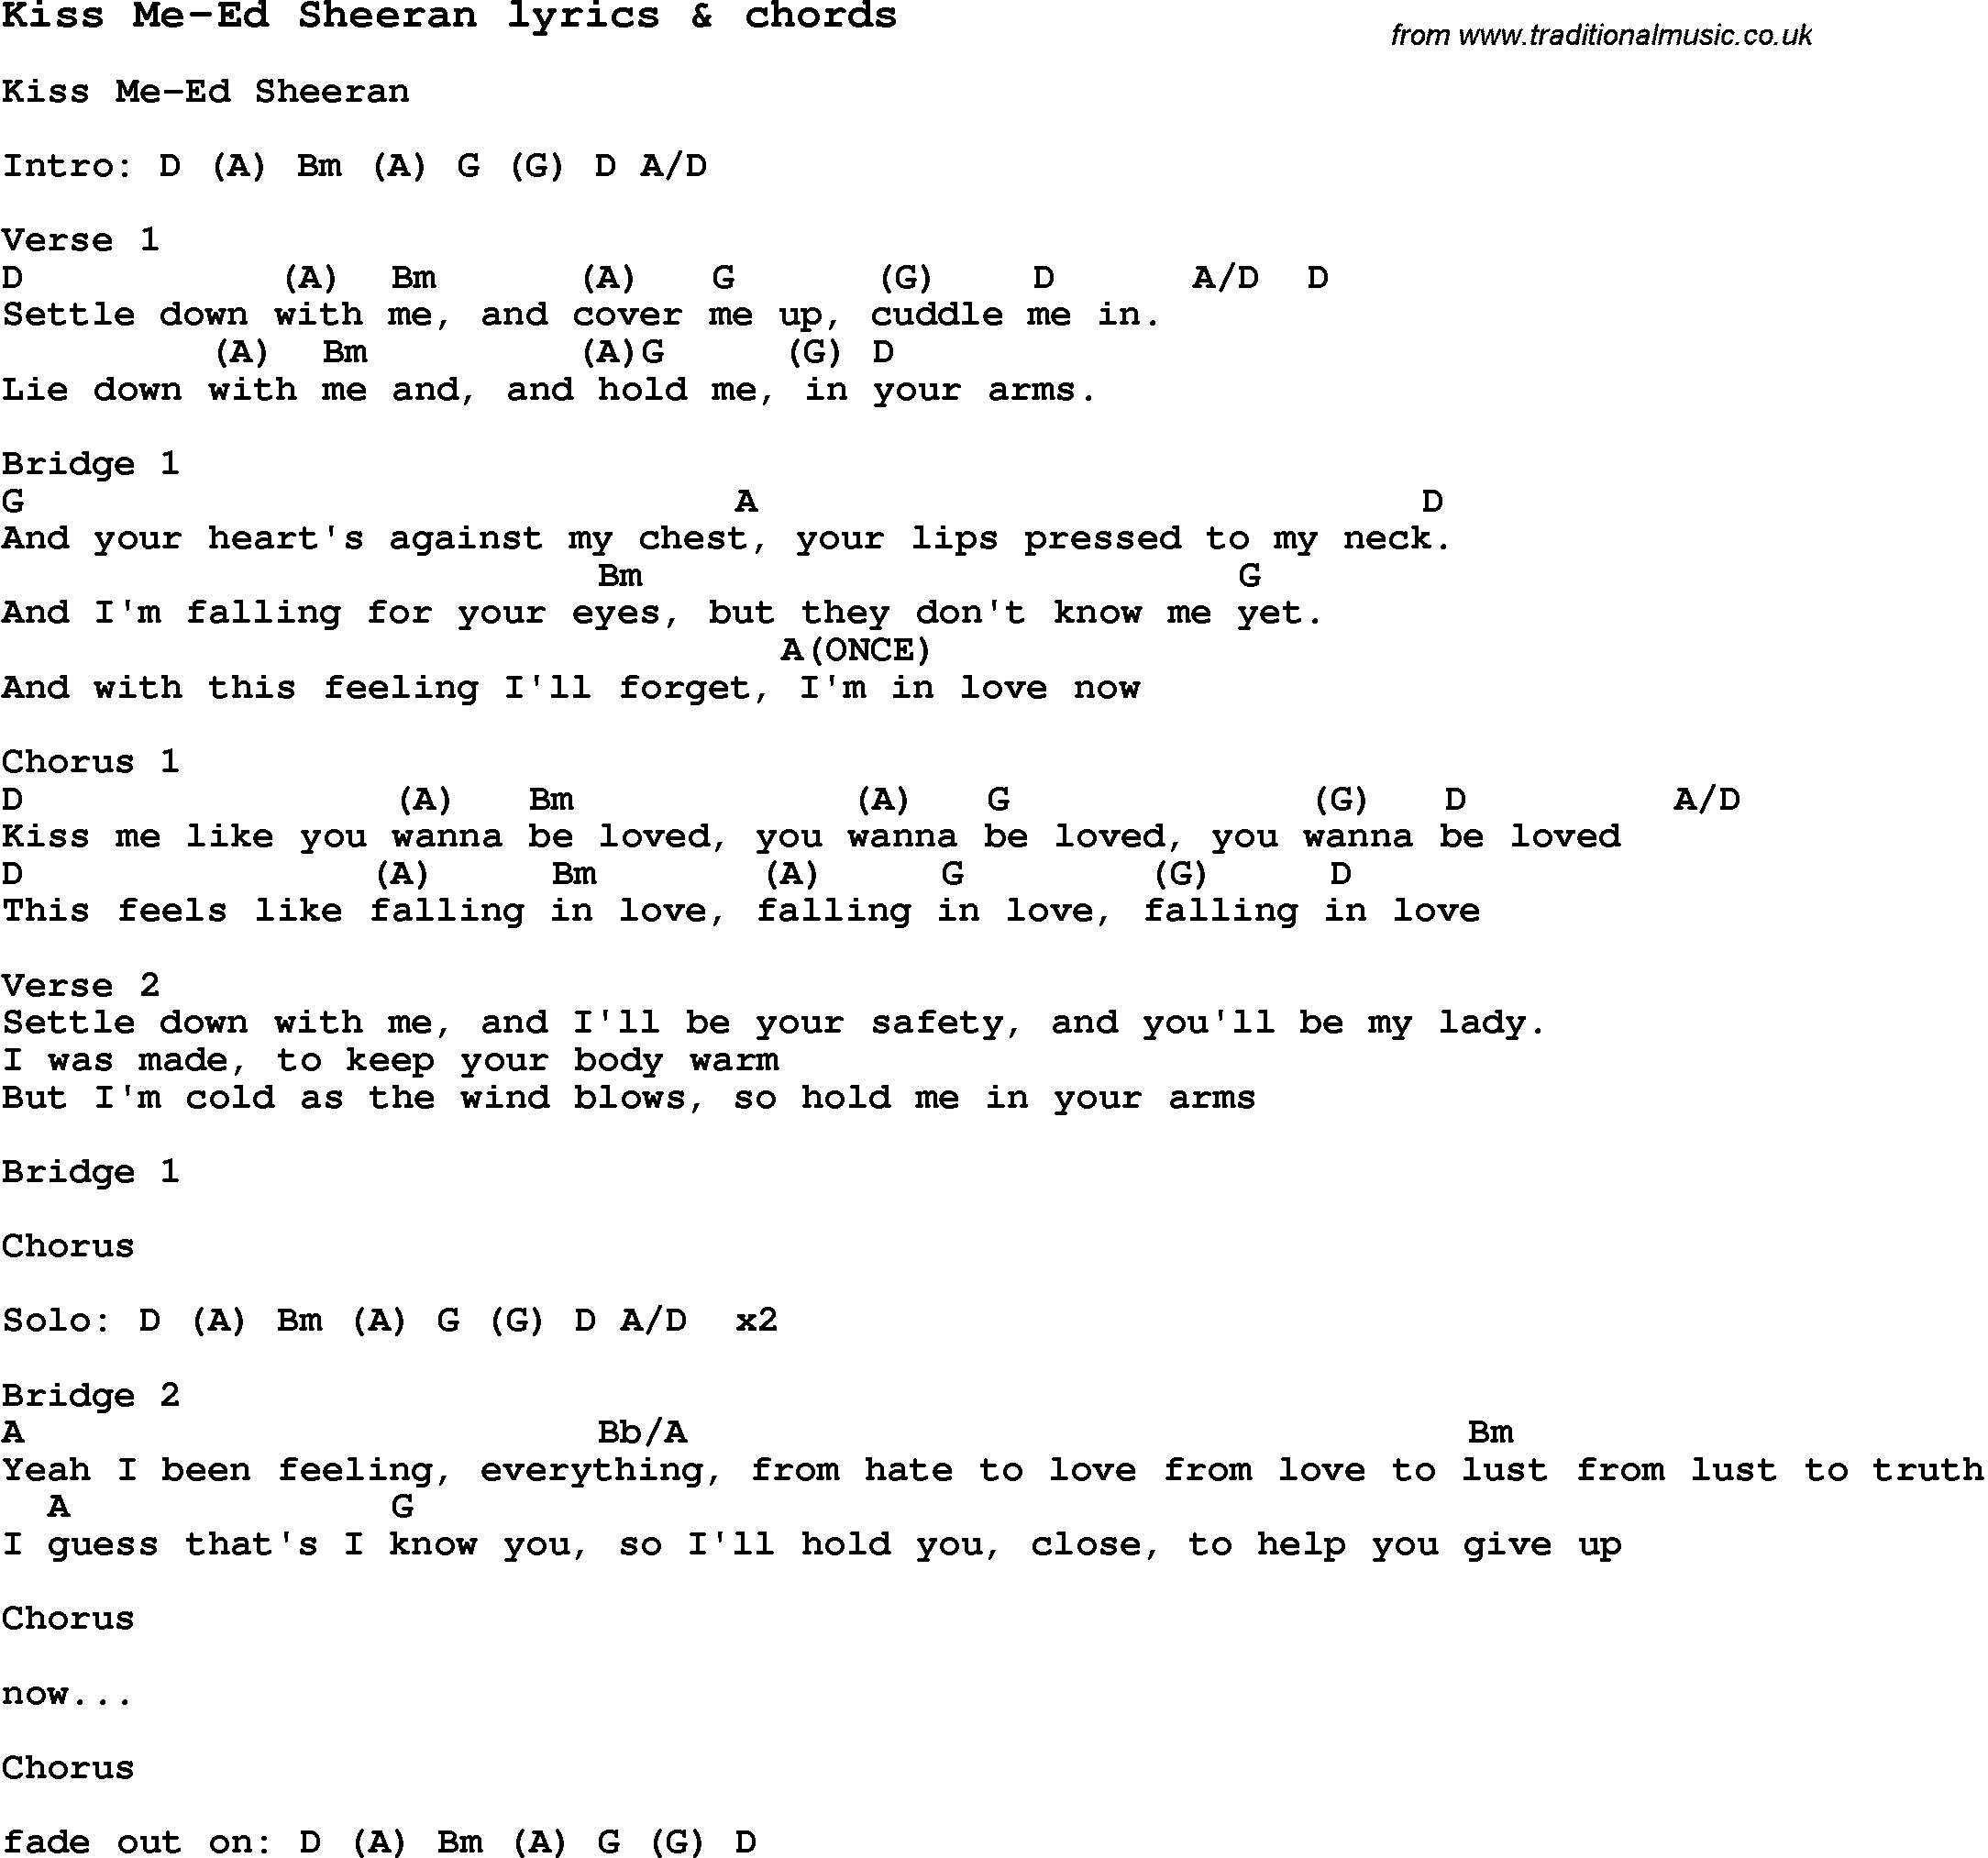 Ed Sheeran Chords Love Song Lyrics Forkiss Me Ed Sheeran With Chords